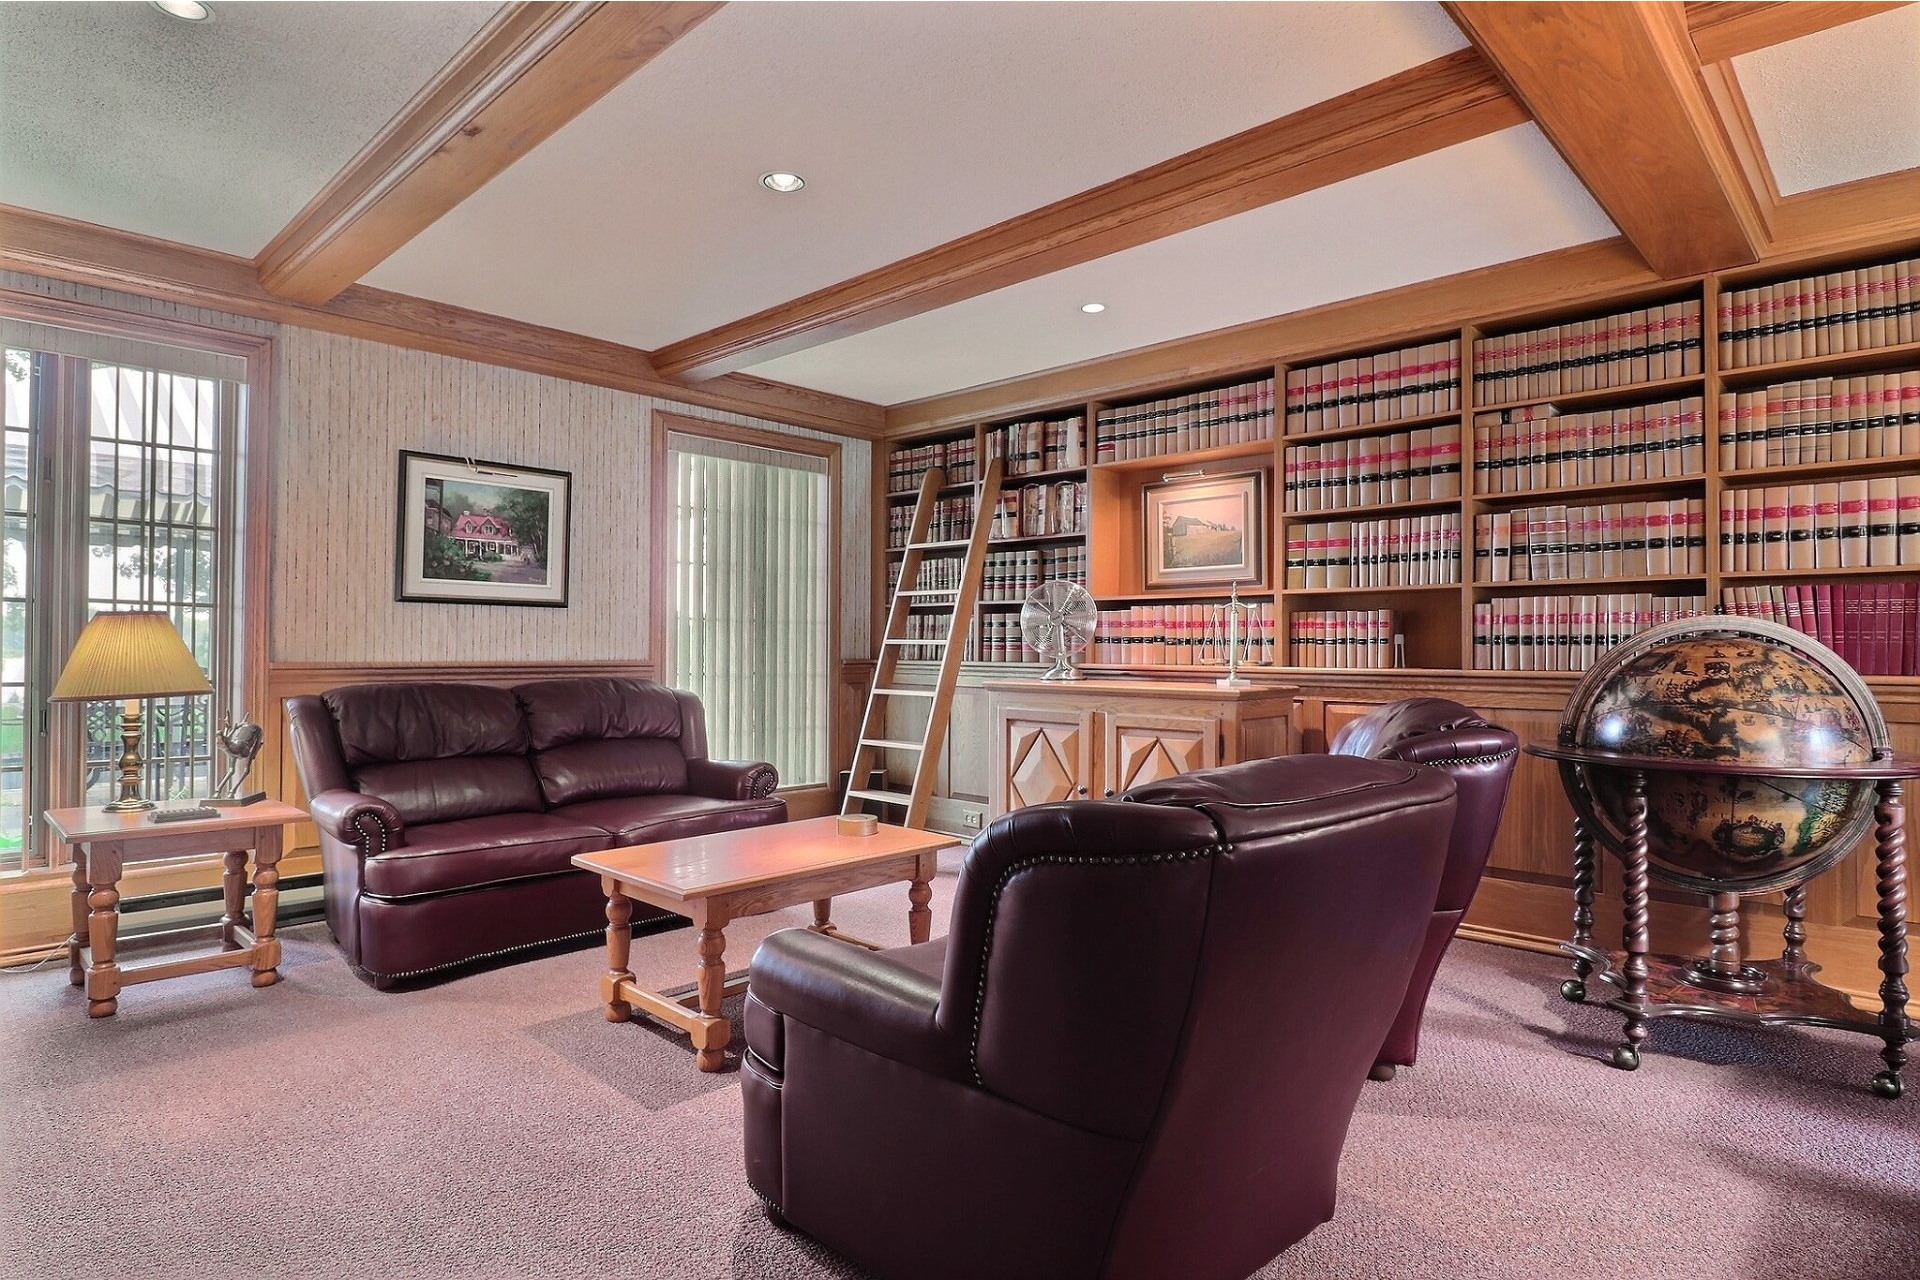 image 31 - House For sale Duvernay Laval